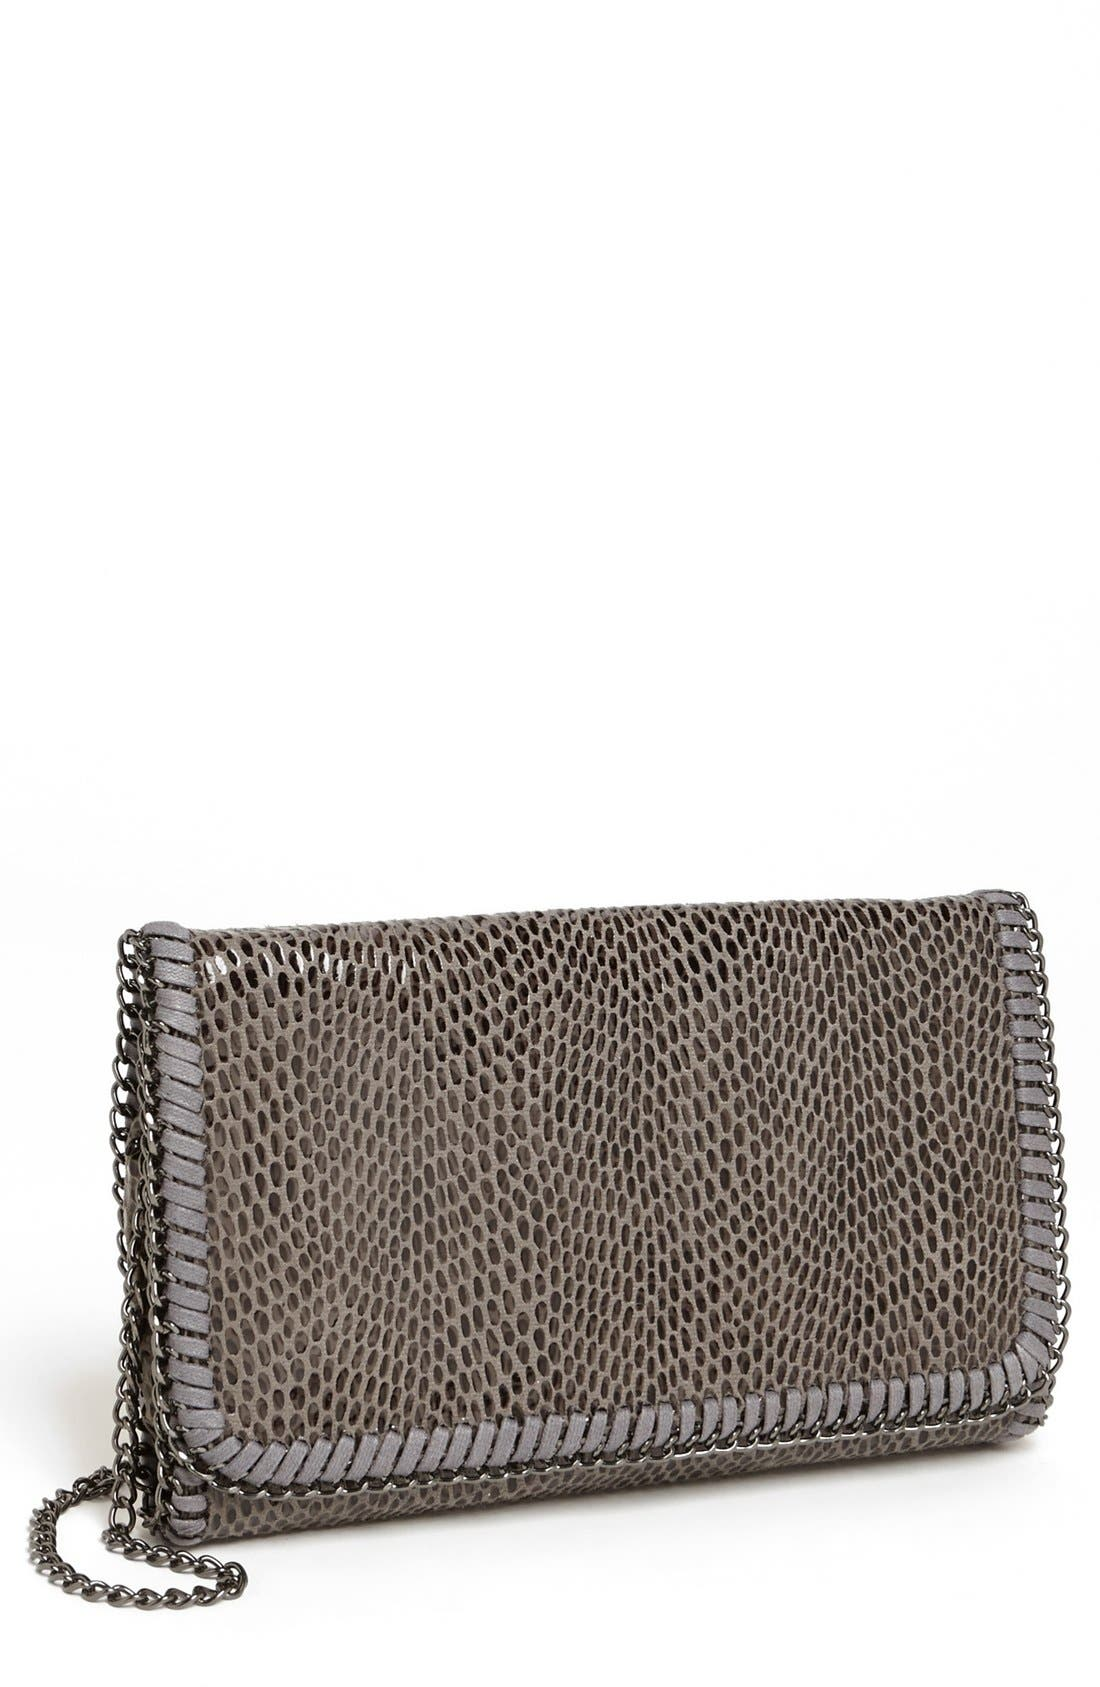 Alternate Image 1 Selected - Tarnish Snake Chain Crossbody Clutch